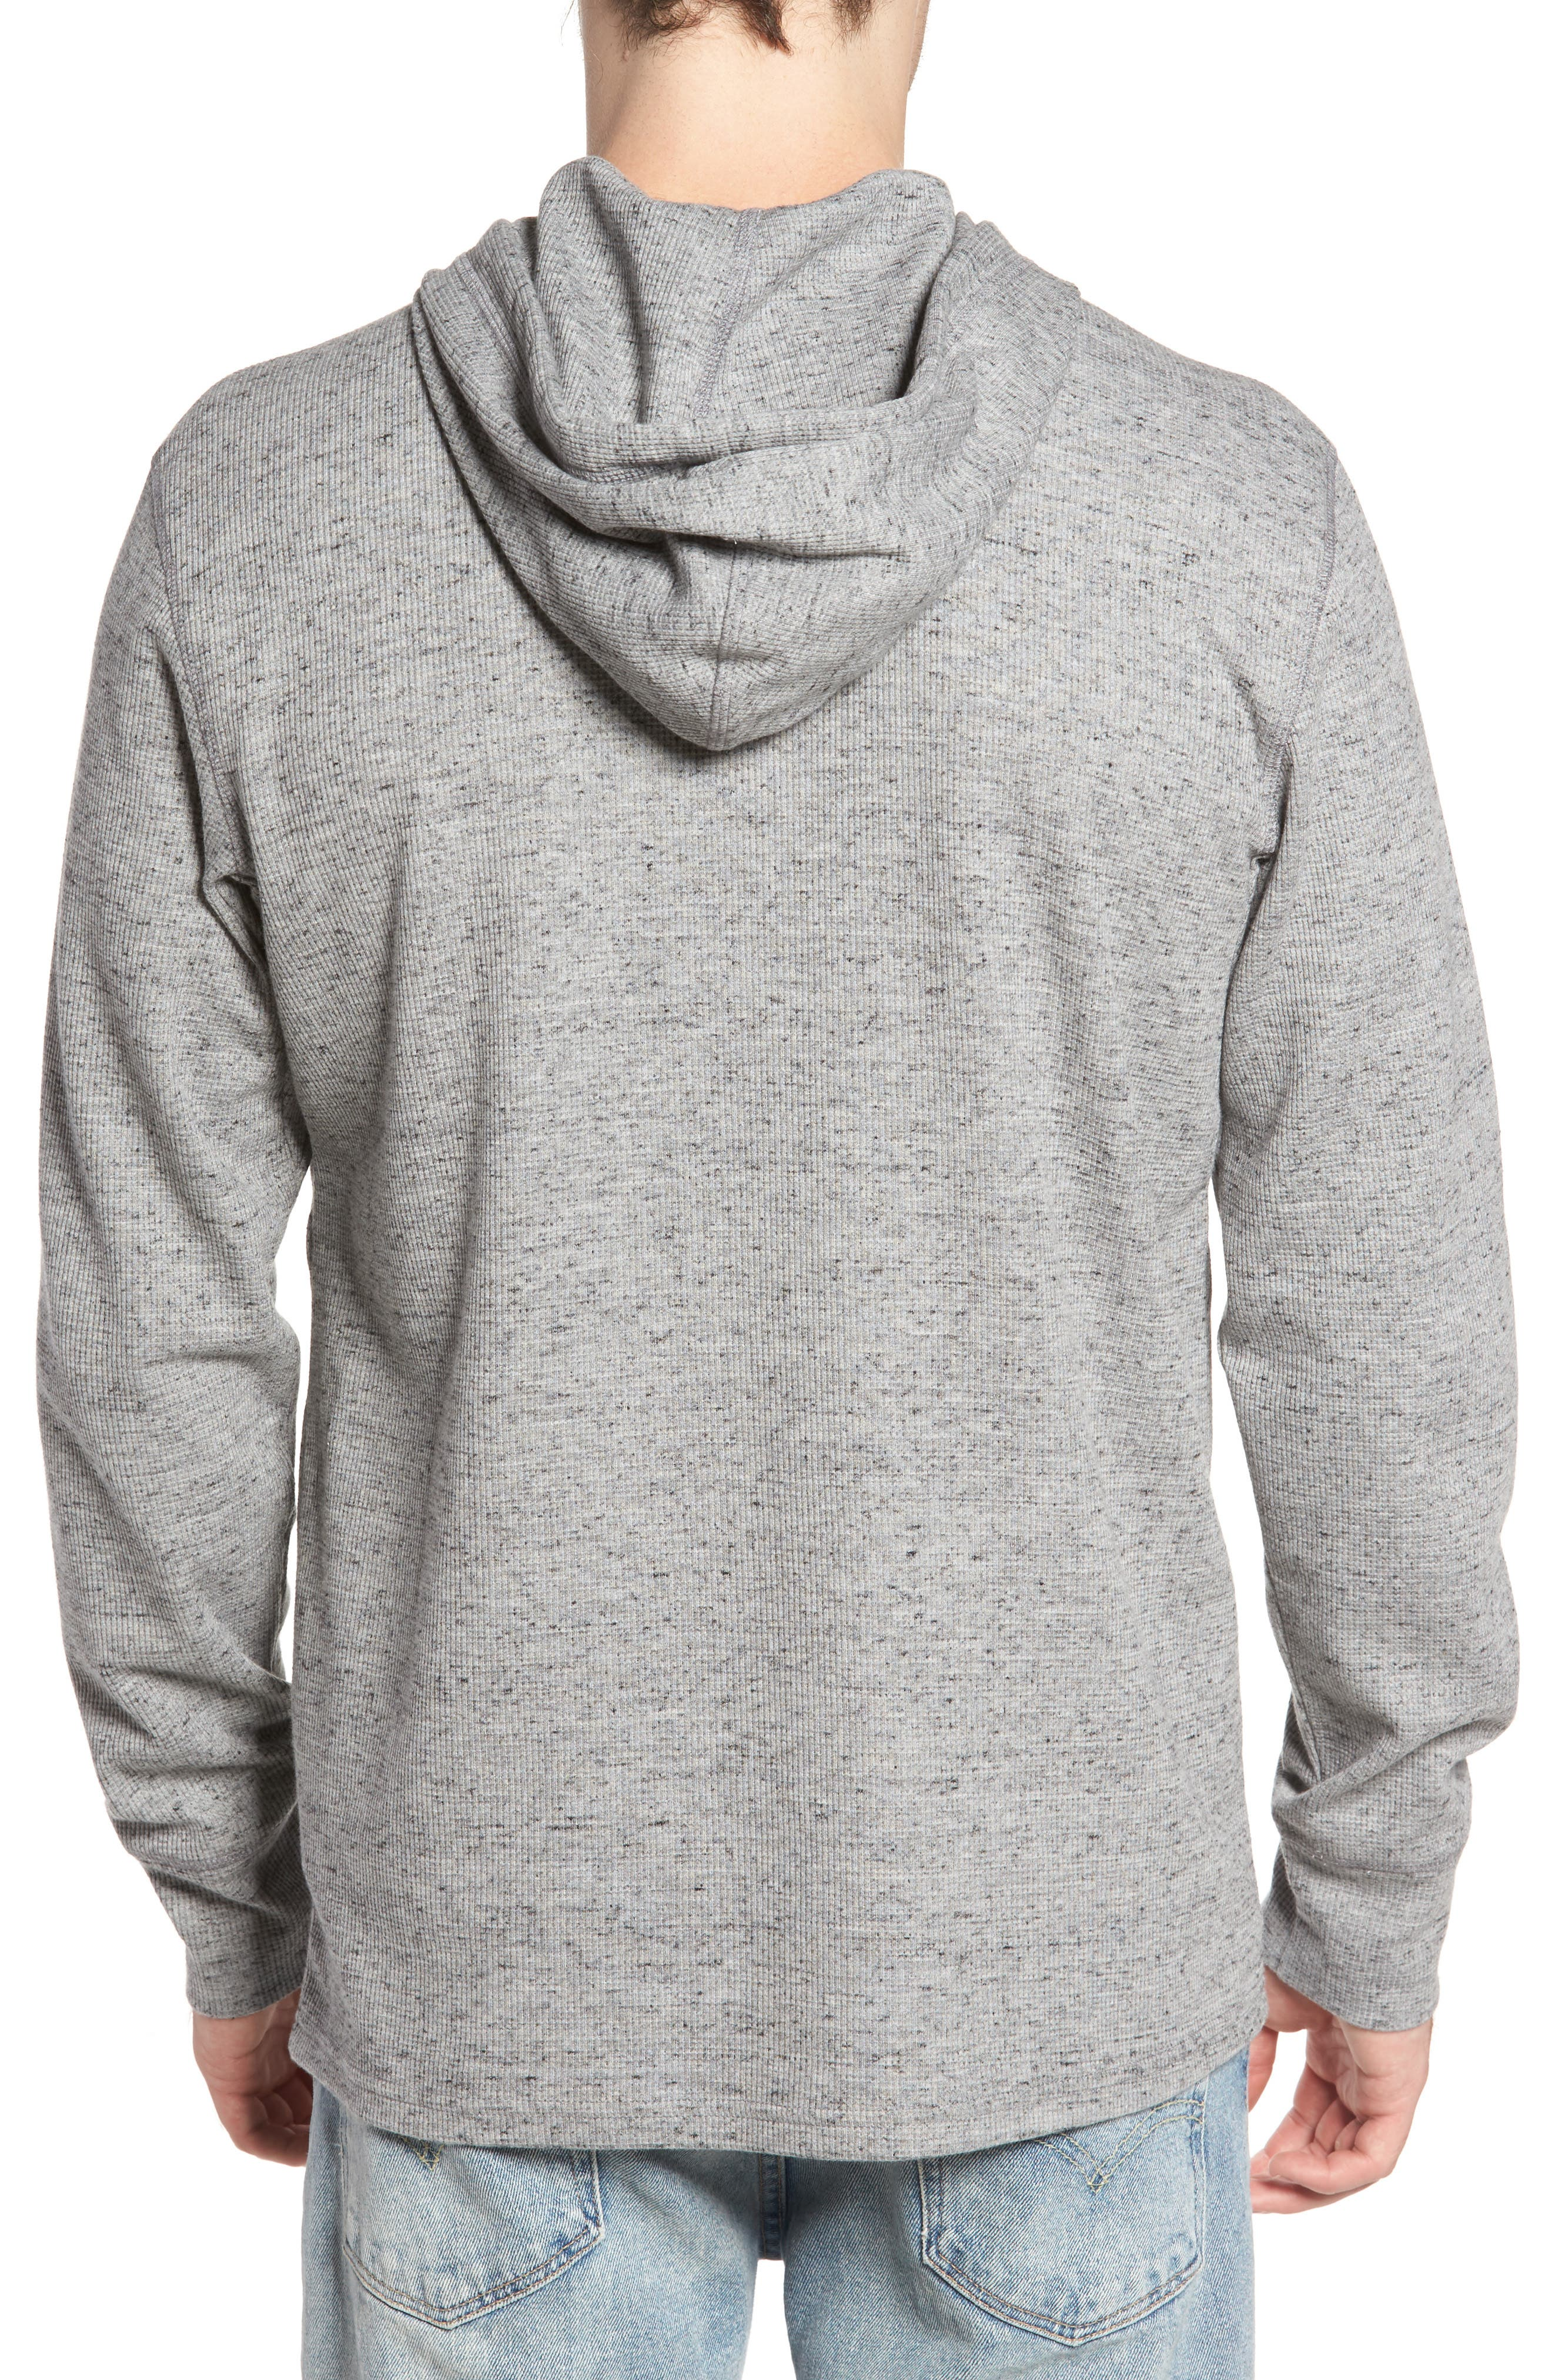 Boldin Thermal Pullover Hoodie,                             Alternate thumbnail 3, color,